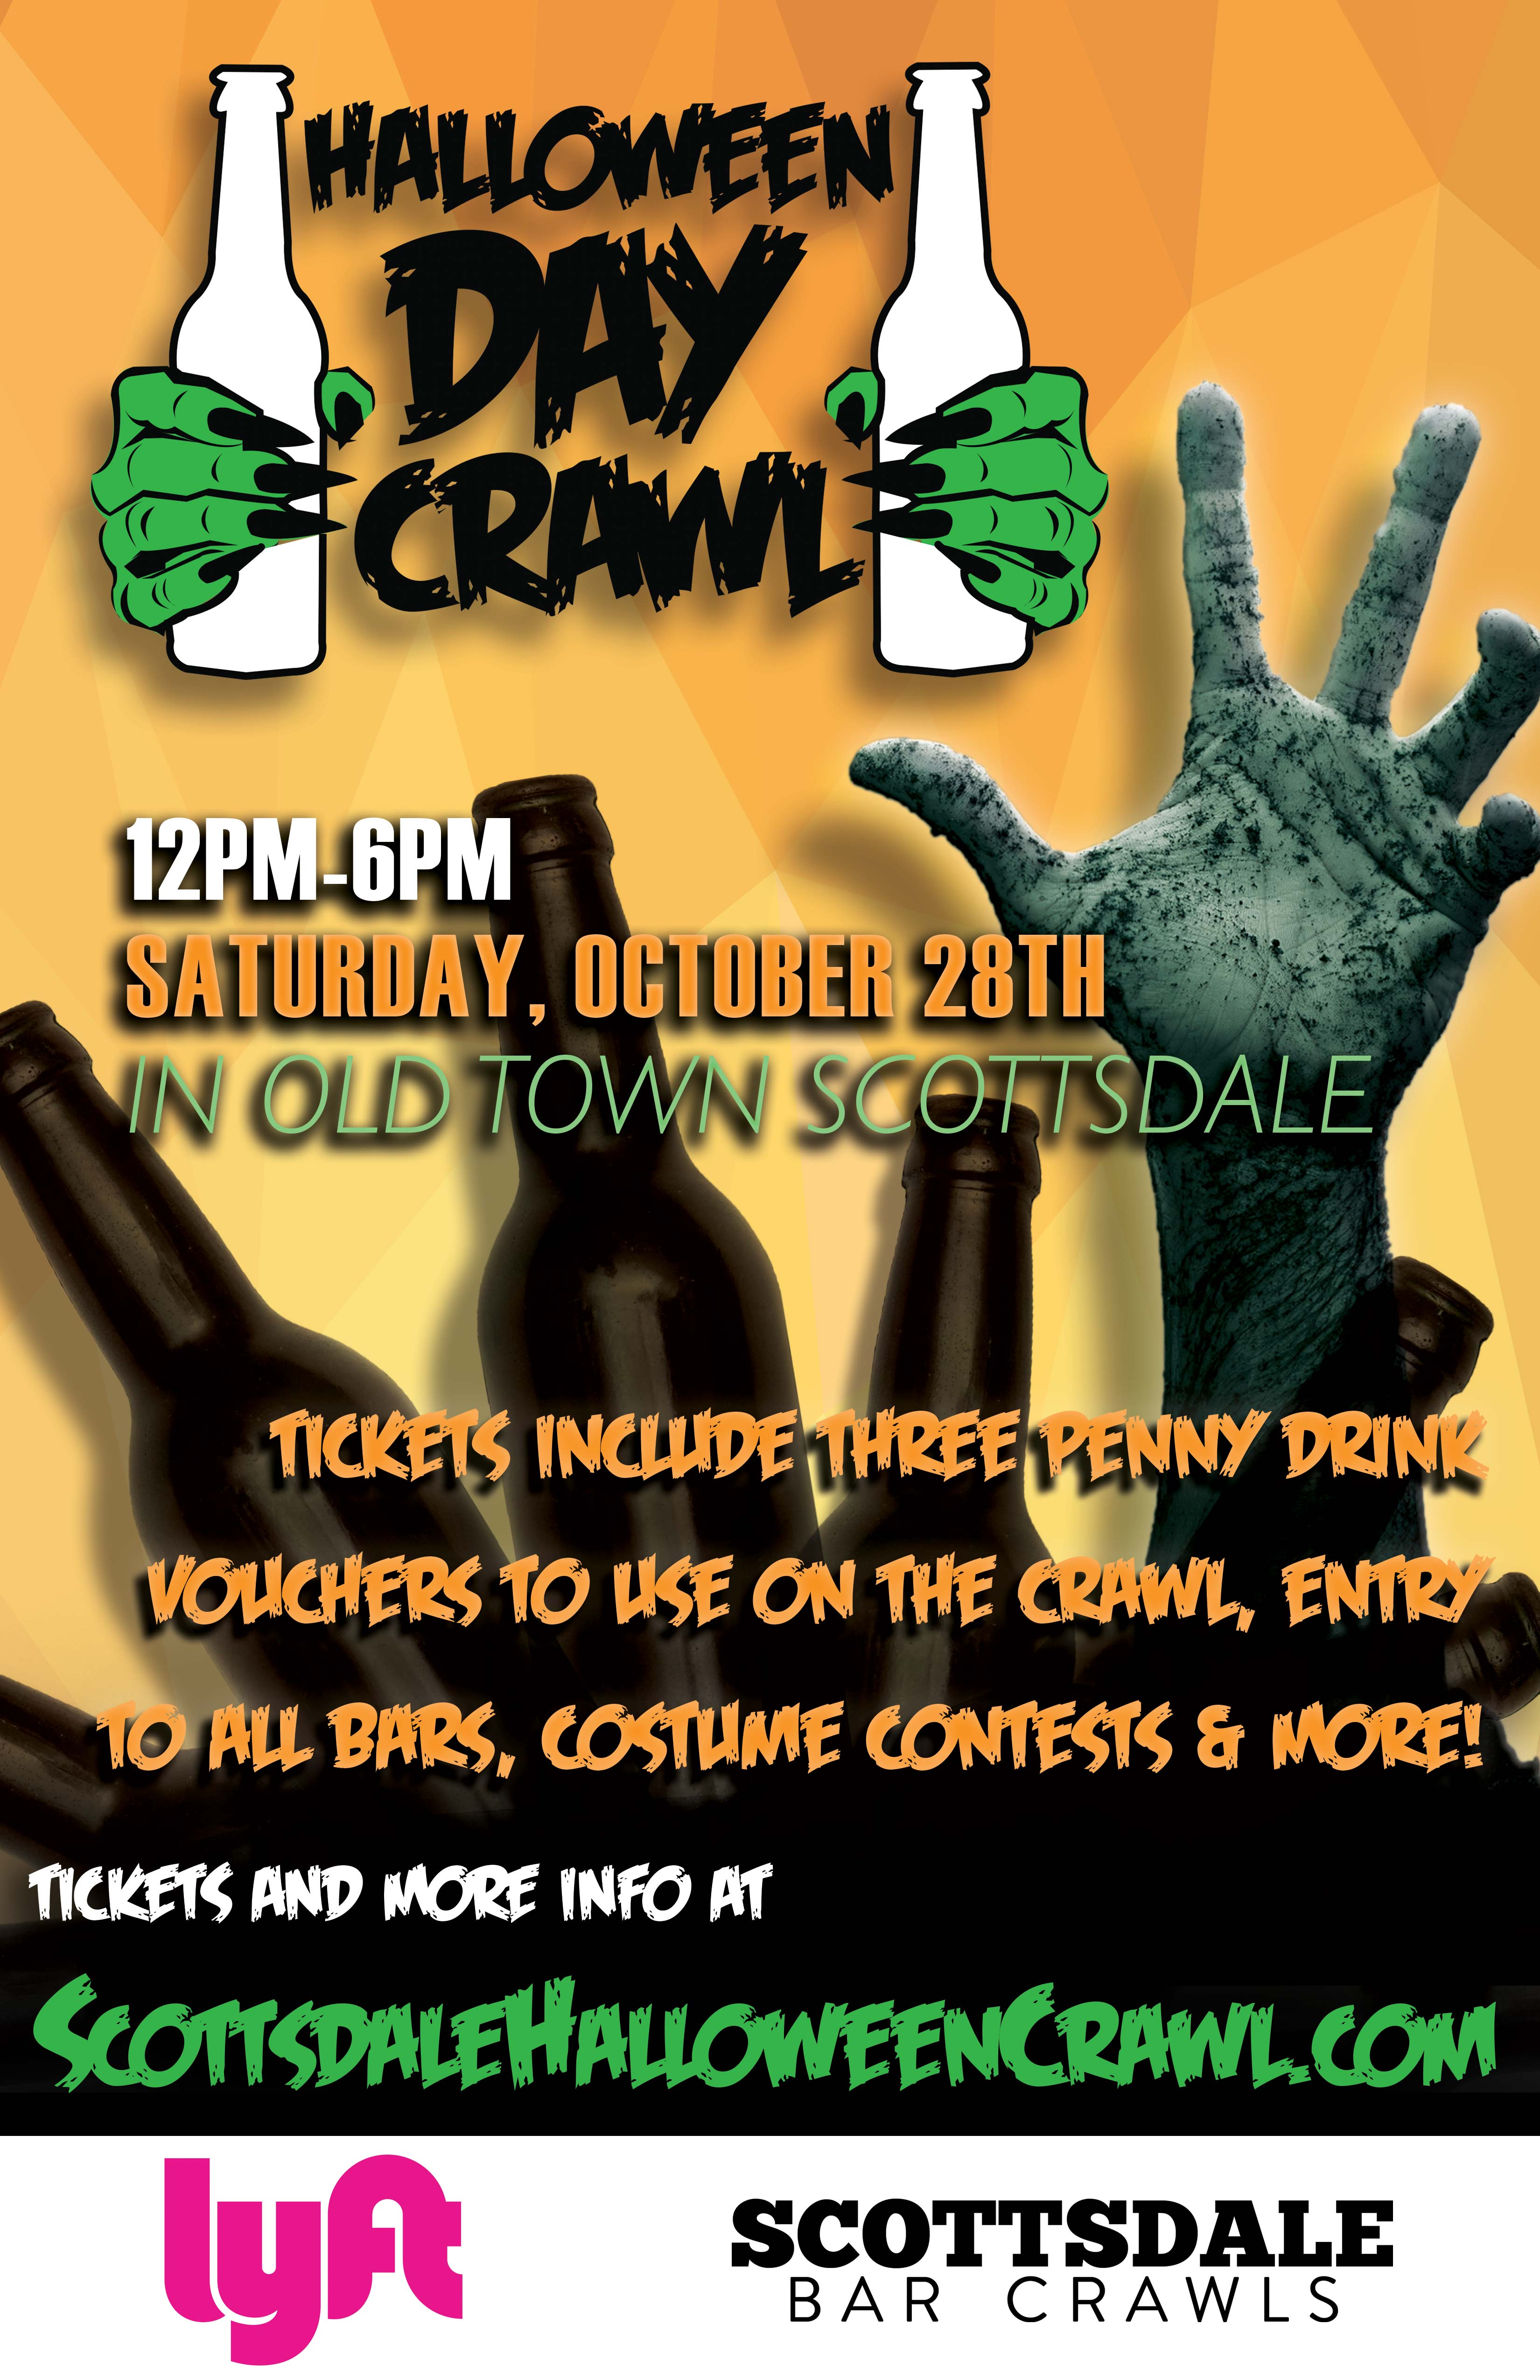 Scottsdale Halloween Day Bar Crawl Party- Tickets include three penny drink vouchers to use on the crawl, entry to all bars, costume contests, giveaways & MORE!